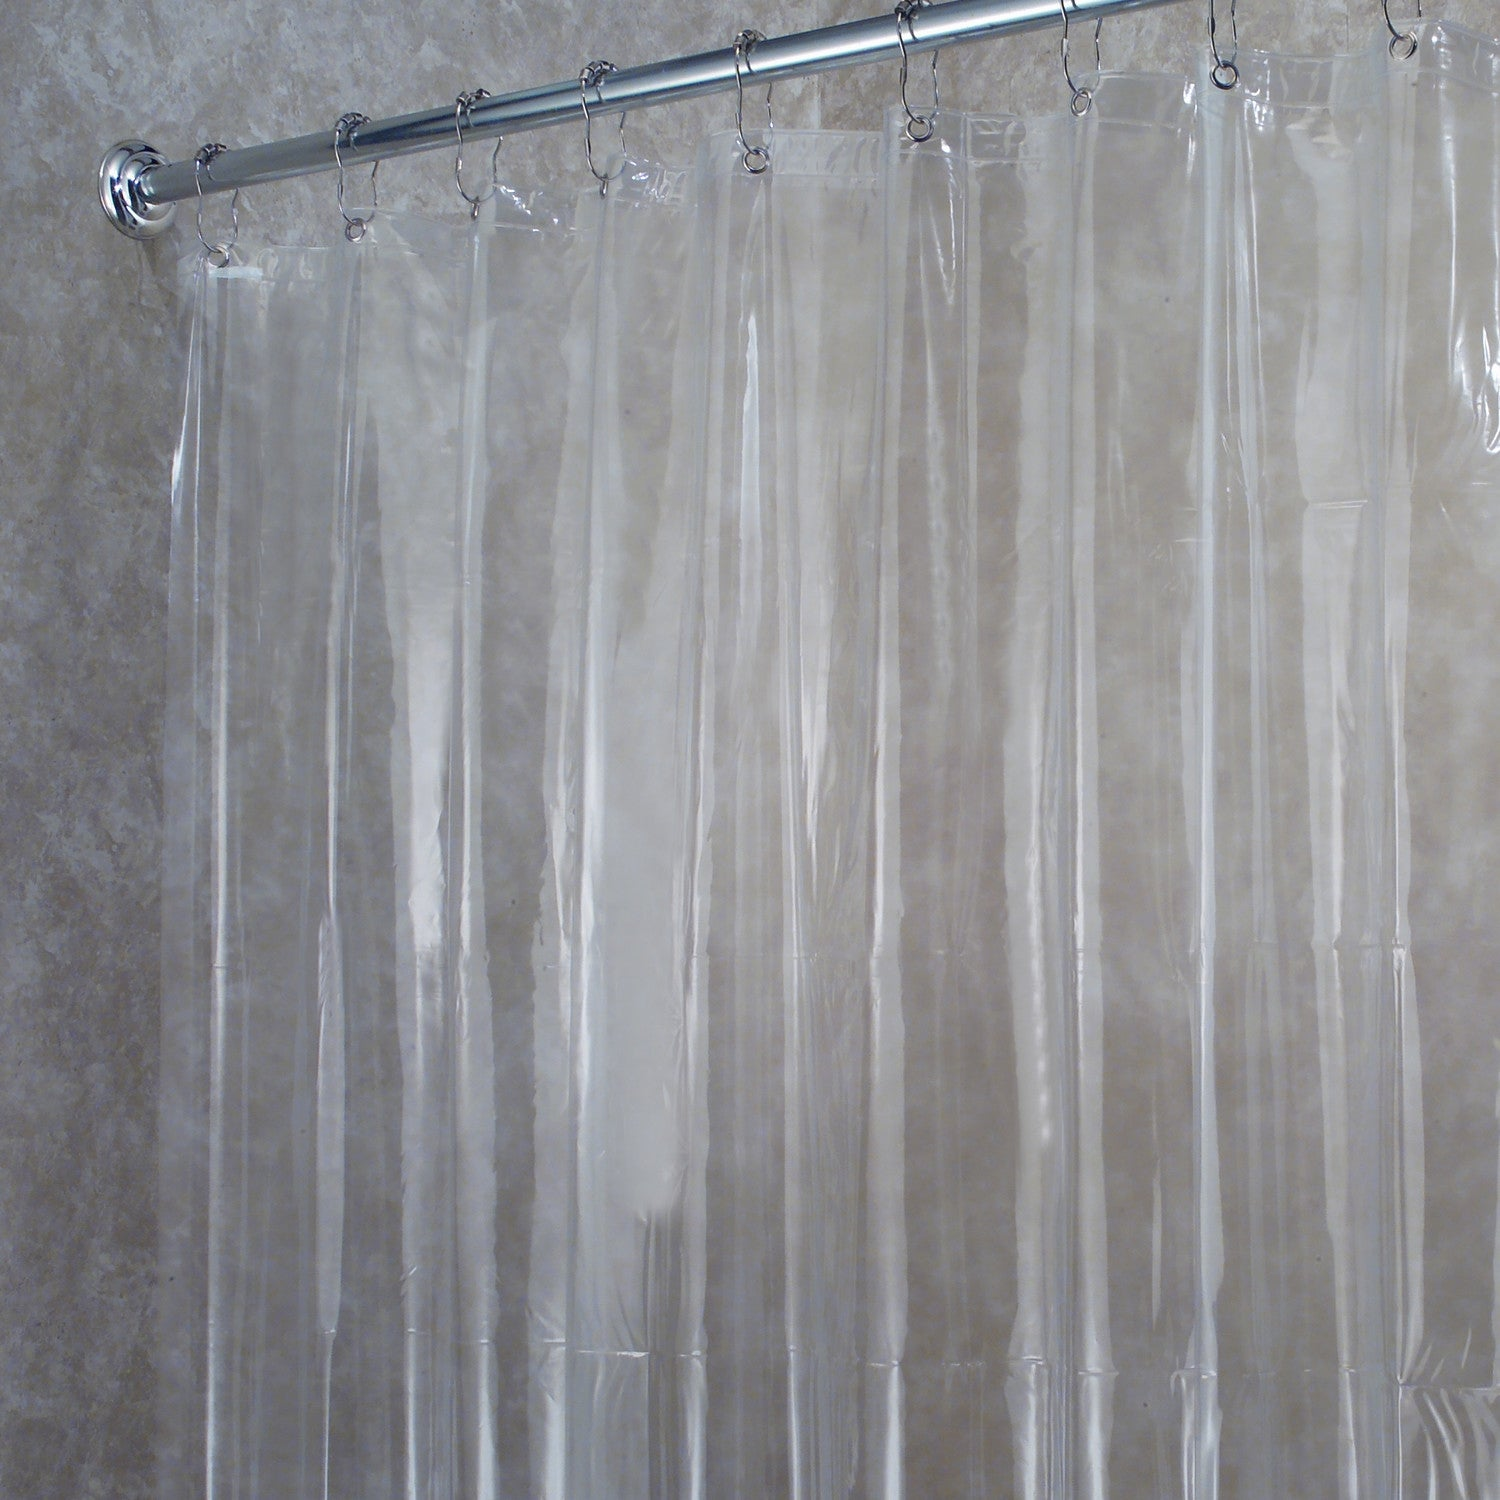 Shop Premium Weight Jumbo Long Vinyl Shower Curtain Liner With Metal Eyelets